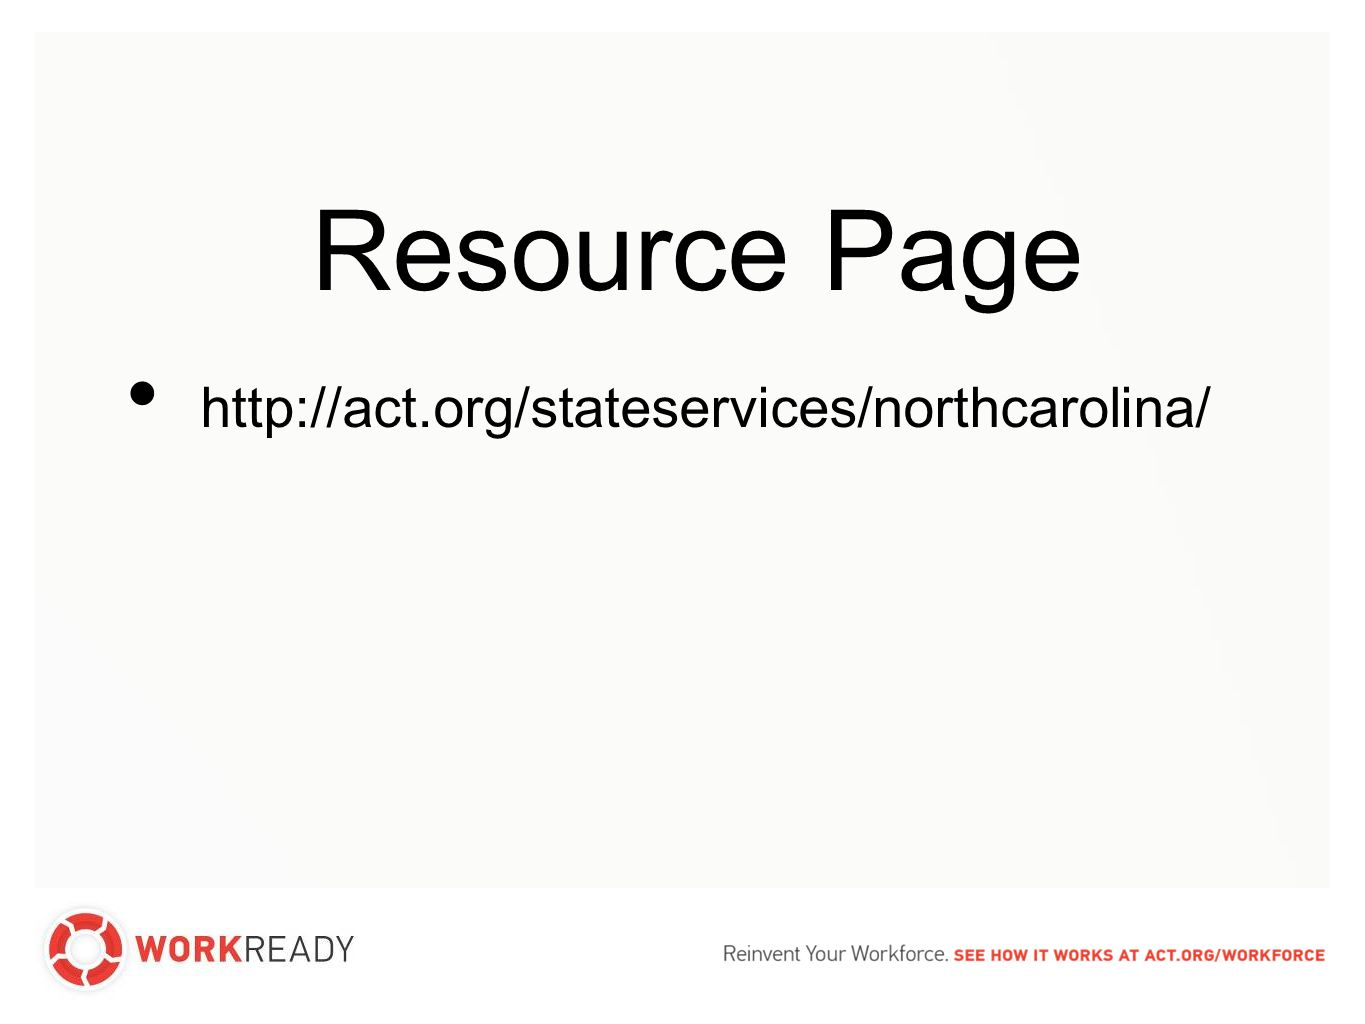 Resource Page http://act.org/stateservices/northcarolina/